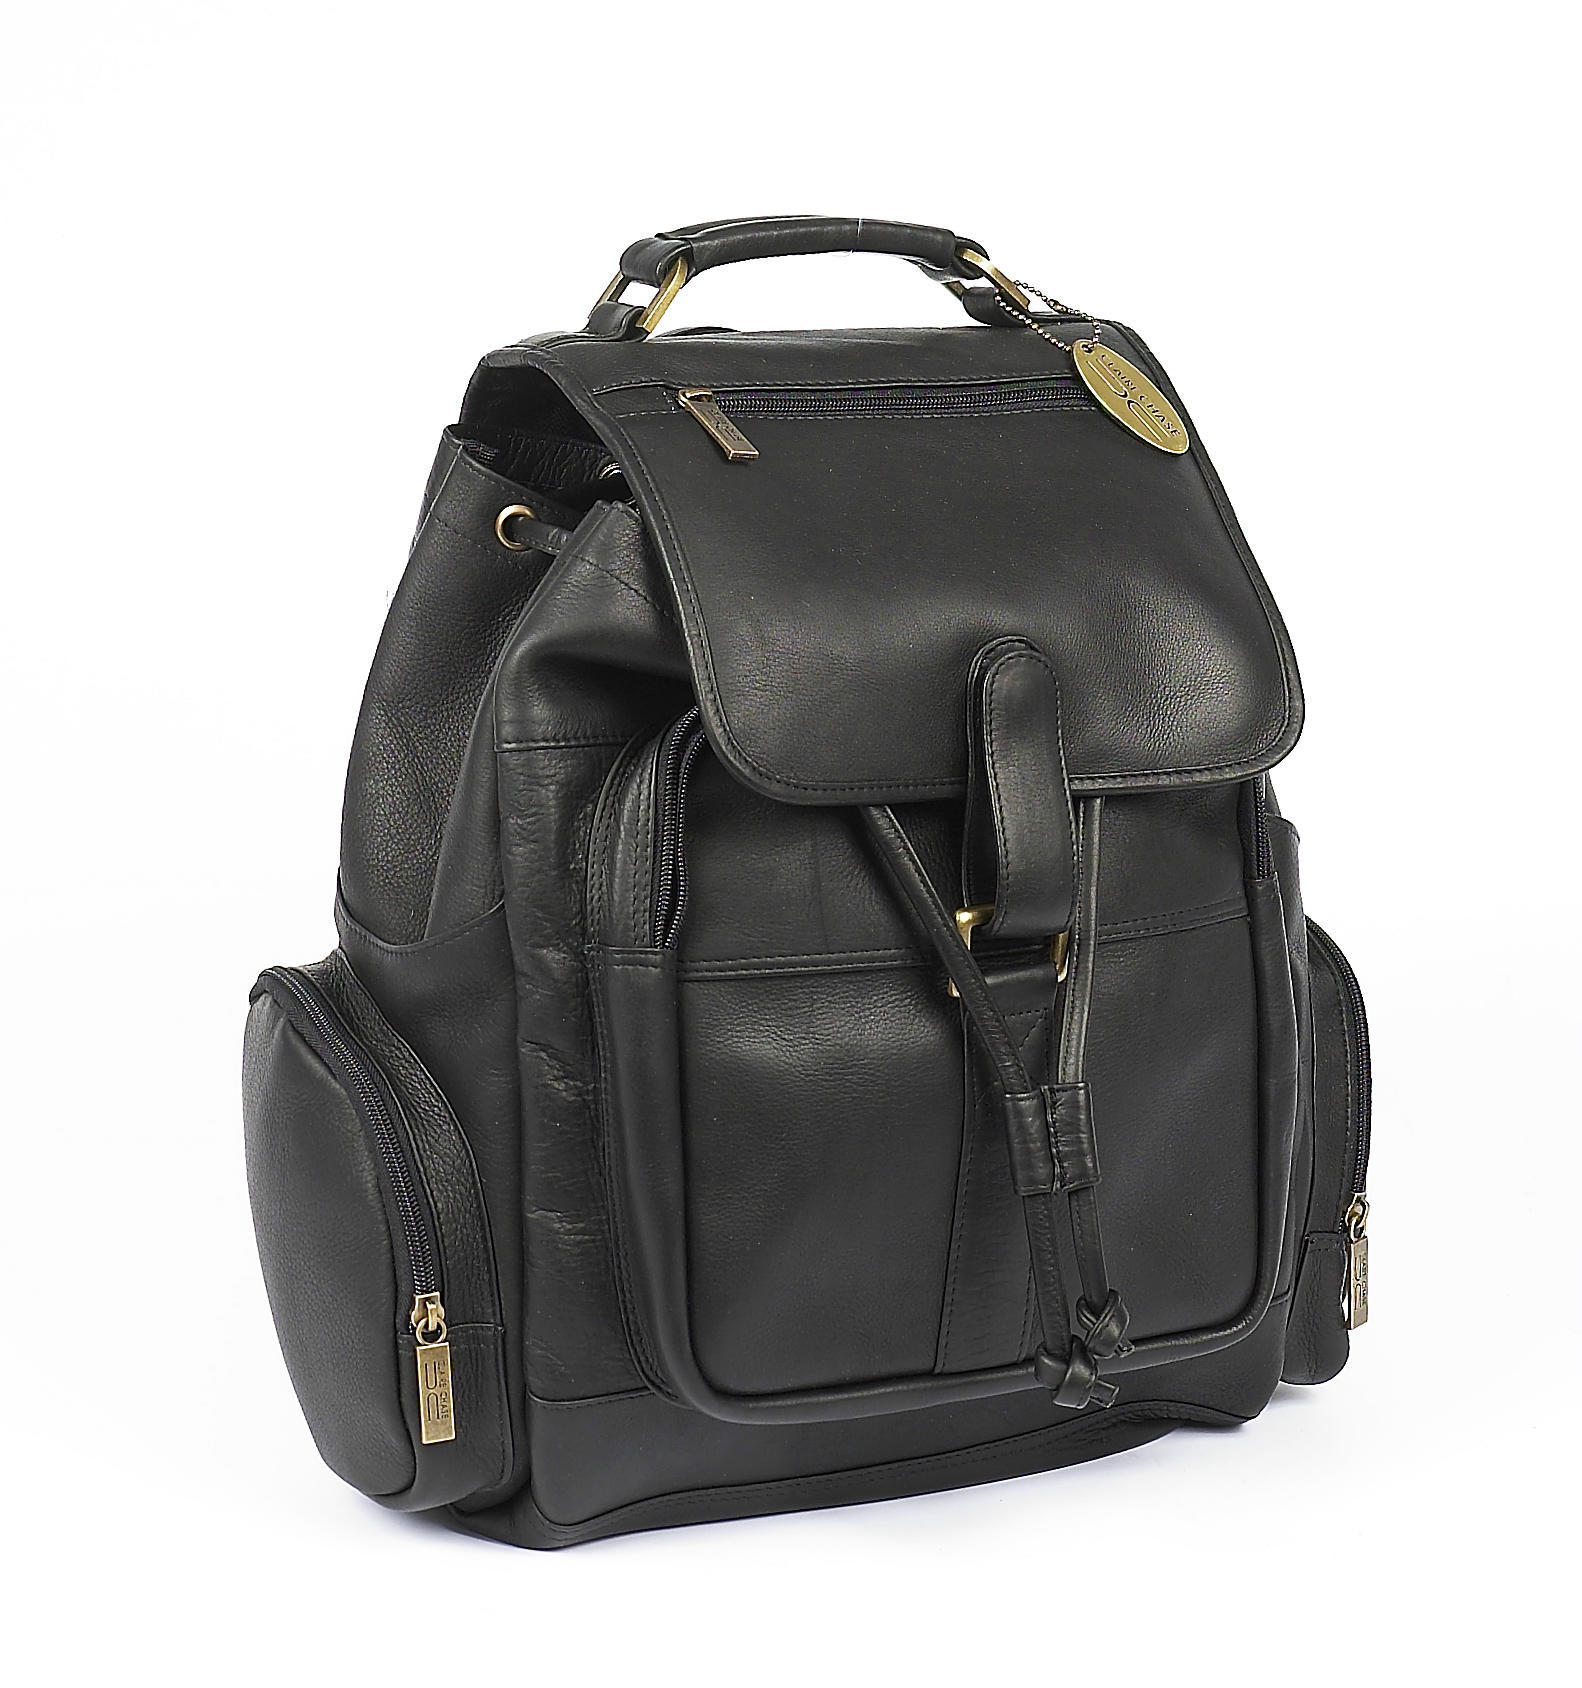 Claire Chase Small Uptown Bak-Pak